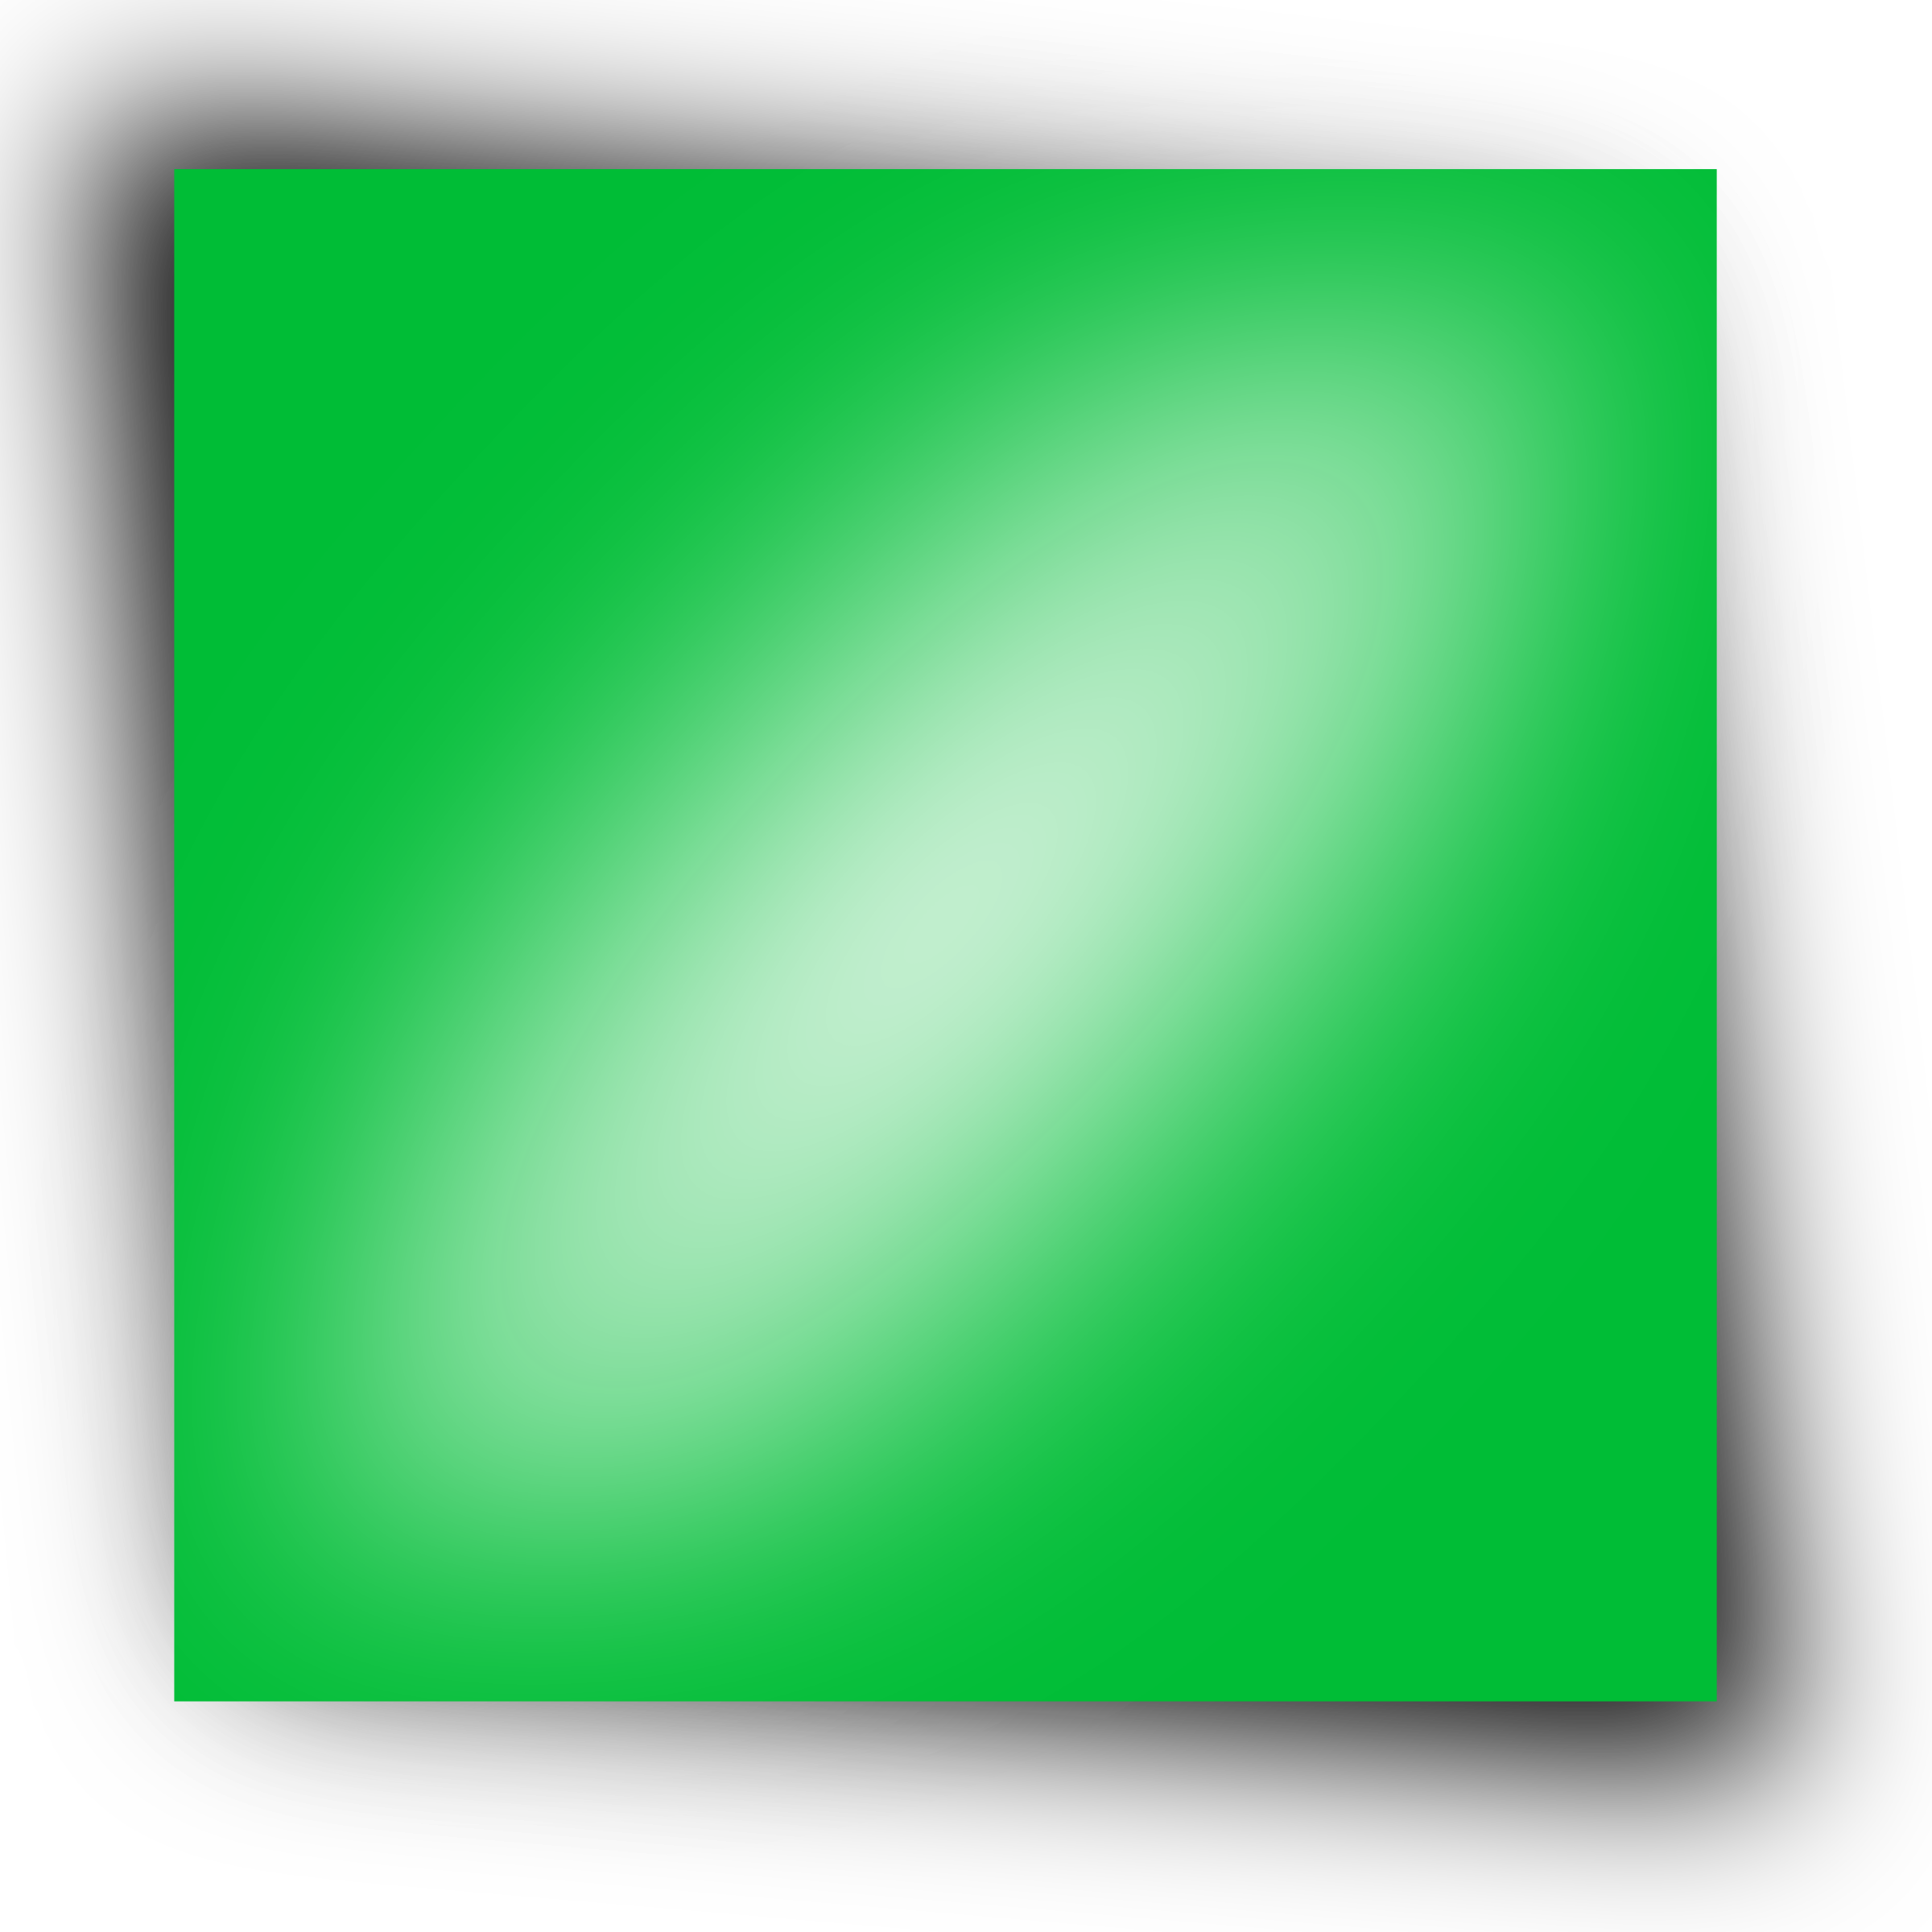 Green rectangle png. Clipart big image